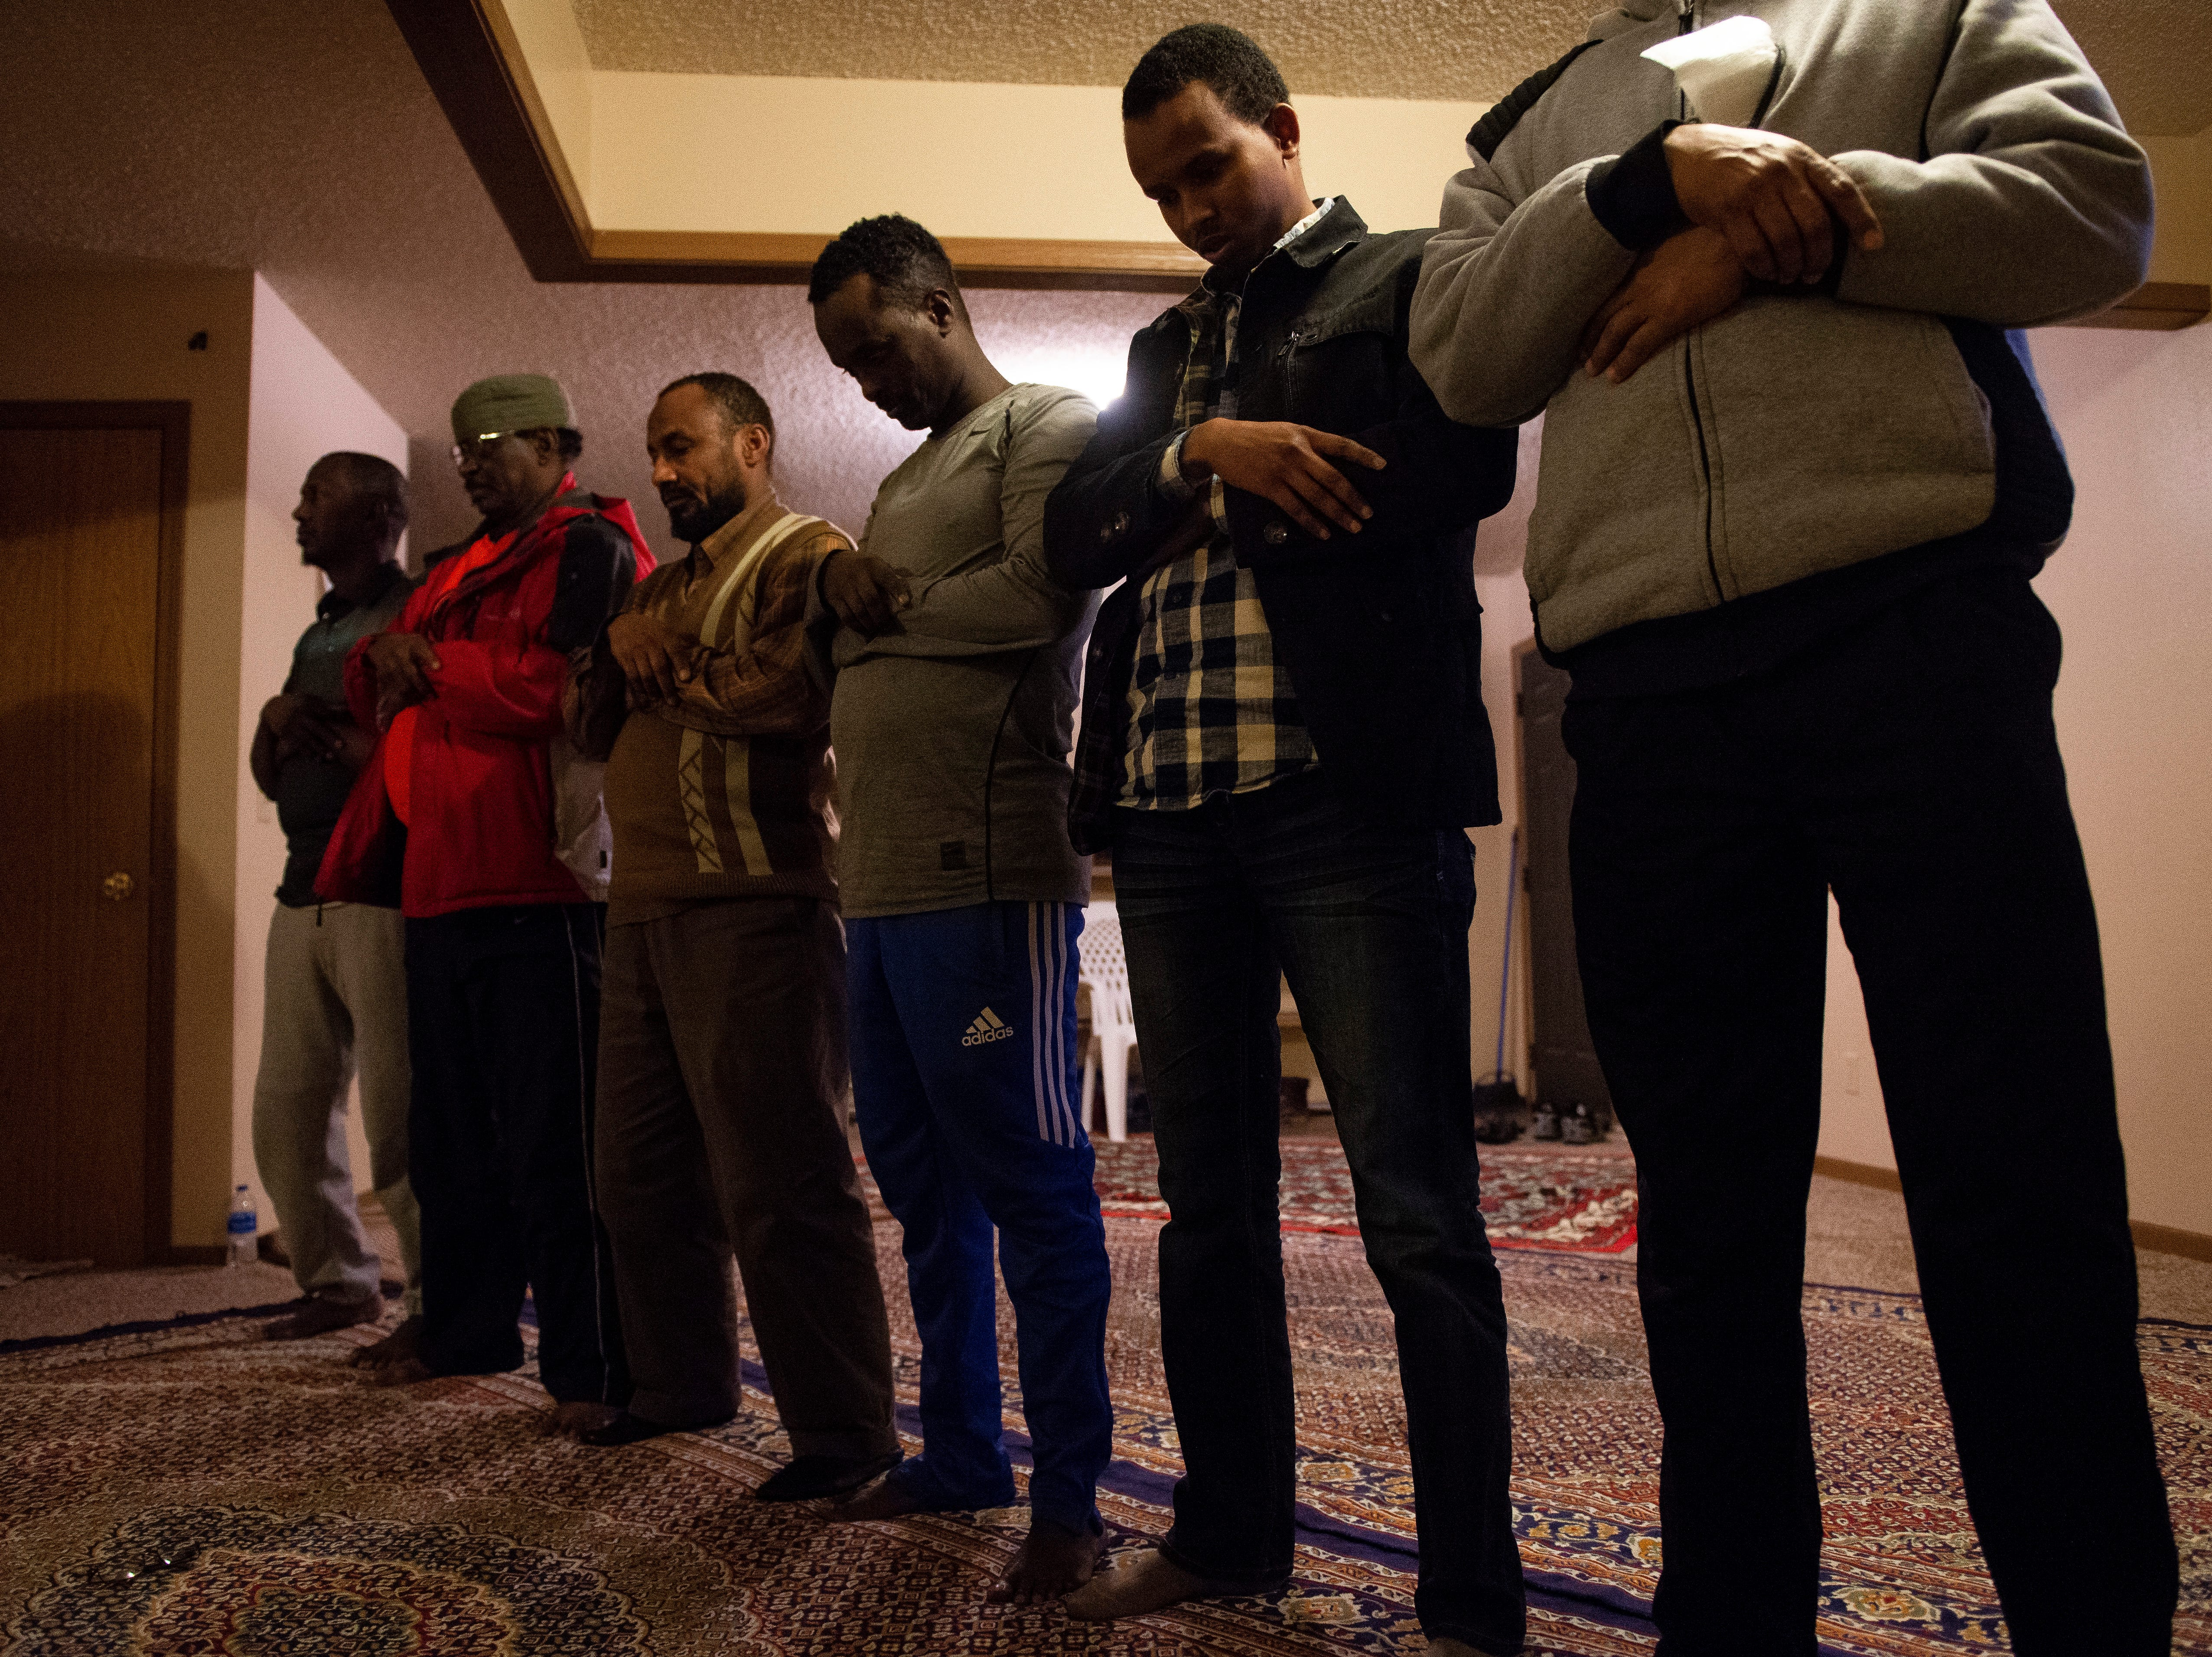 Somali refugees pray in an apartment that has been turned into a mosque at the Garden Spot Apartments on Wednesday, Jan. 23, 2019.